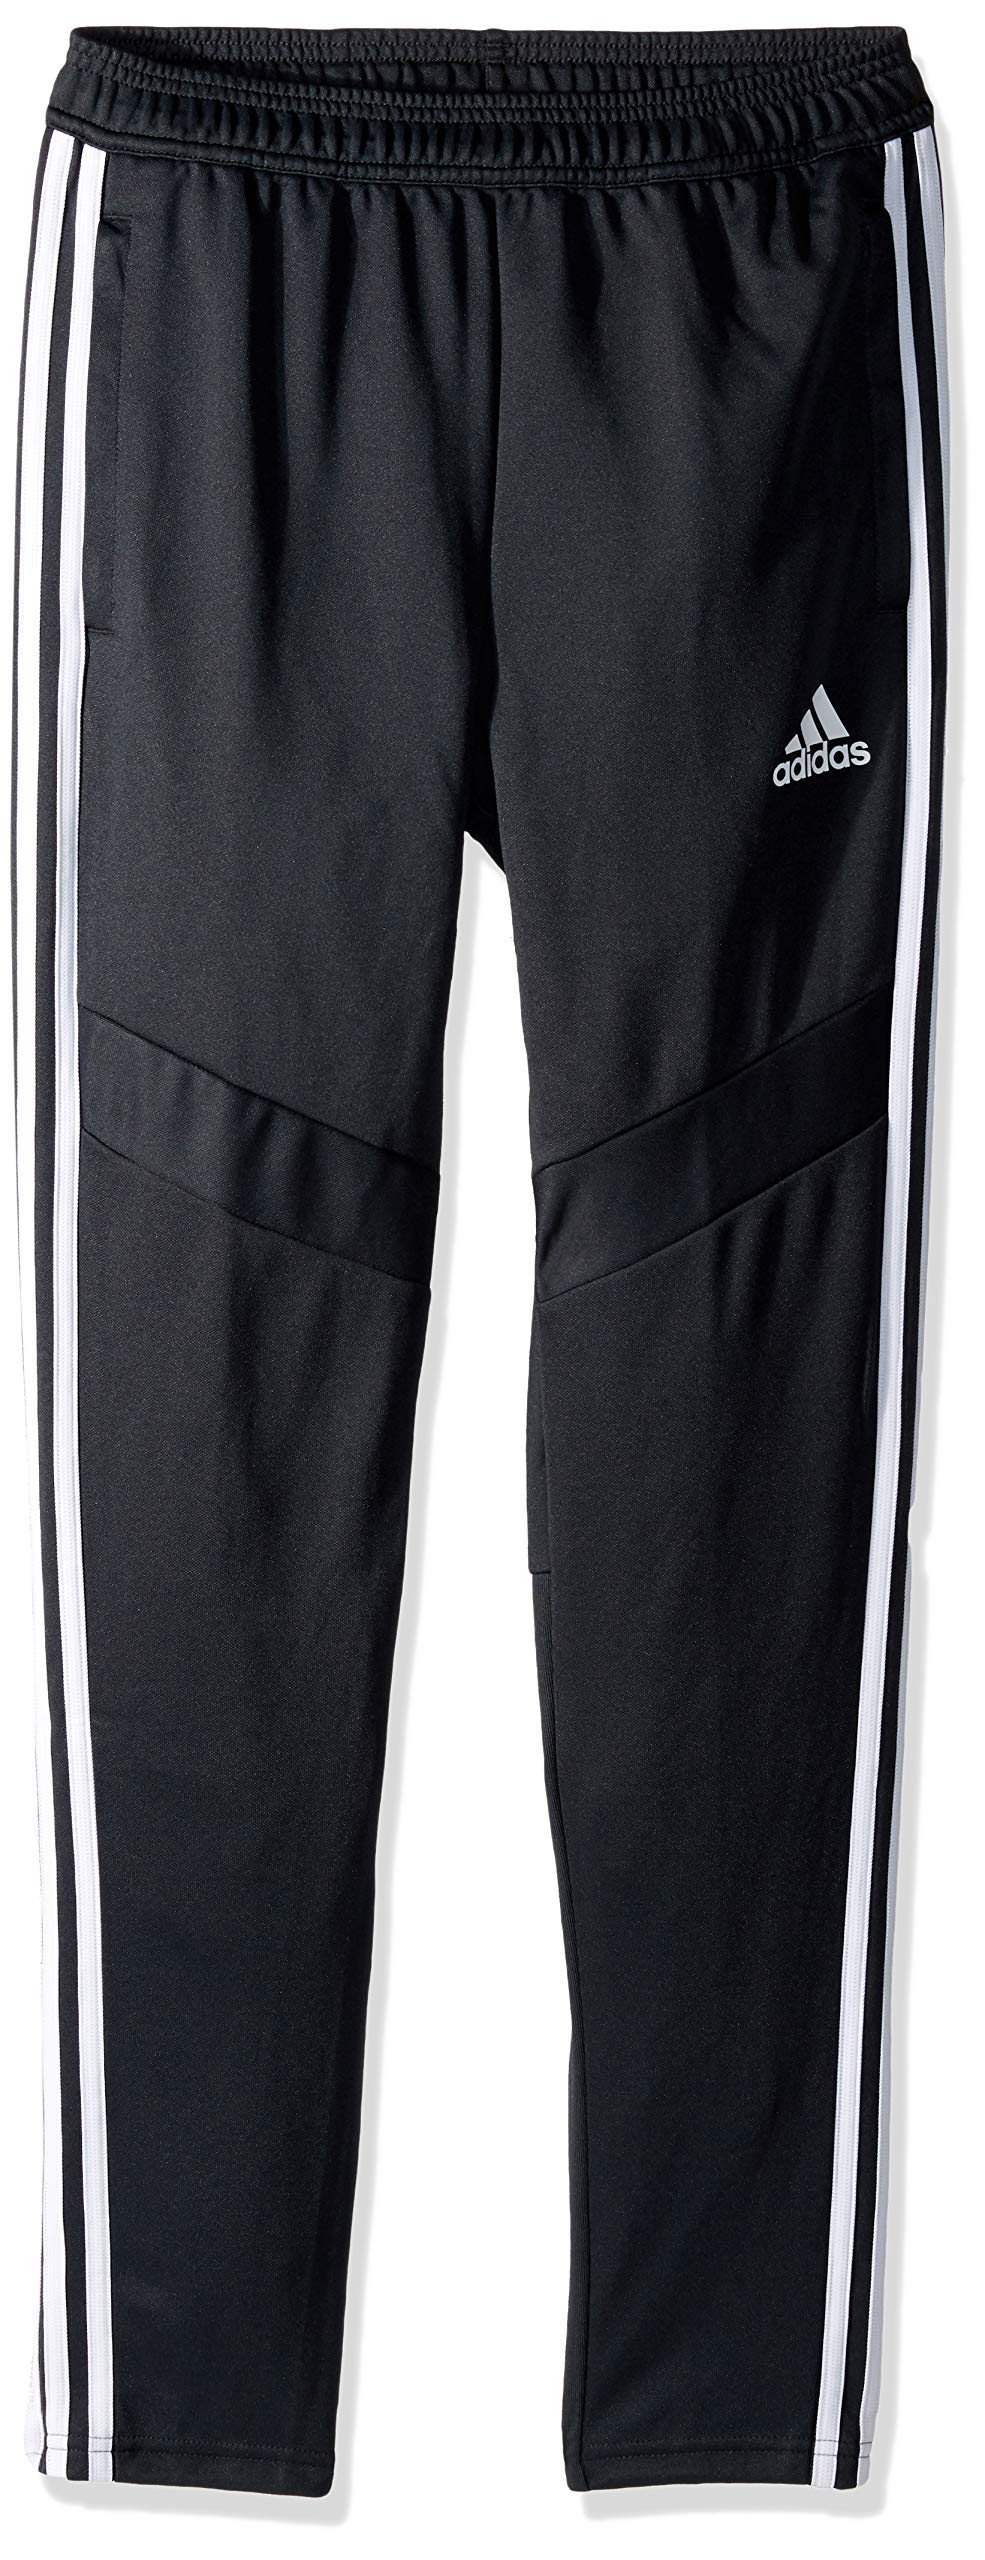 adidas Youth Tiro19 Youth Training Pants, Dark Grey/White, XX-Small